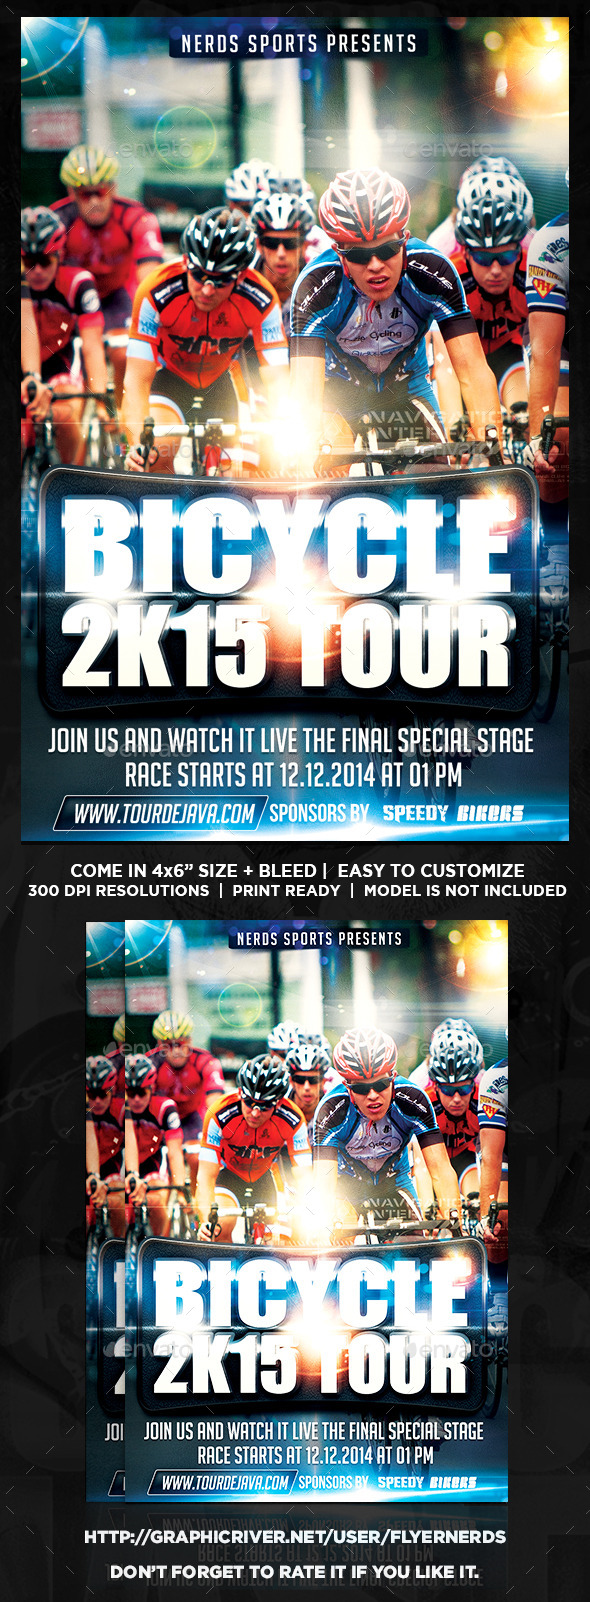 Bicycle 2K15 Tour Sports Flyer - Sports Events